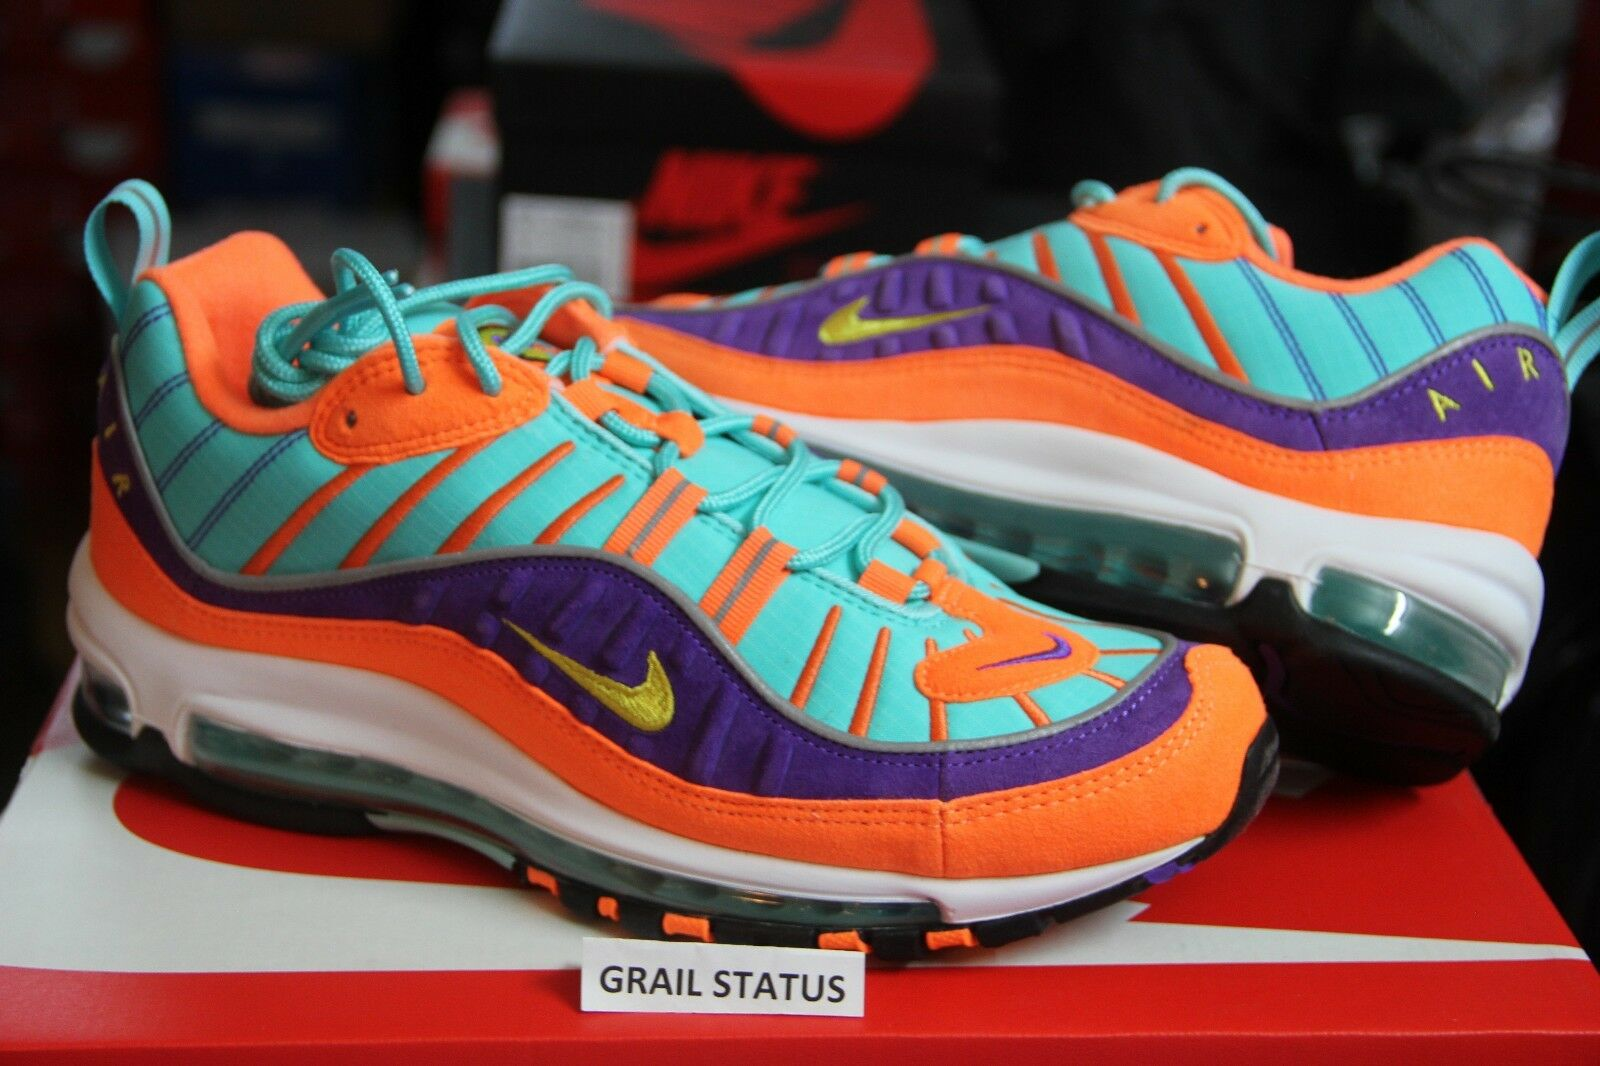 Nike Air Max 98 Cone Tour Yellow Hyper Grape QS 924462-800 lot Men Price reduction Comfortable and good-looking